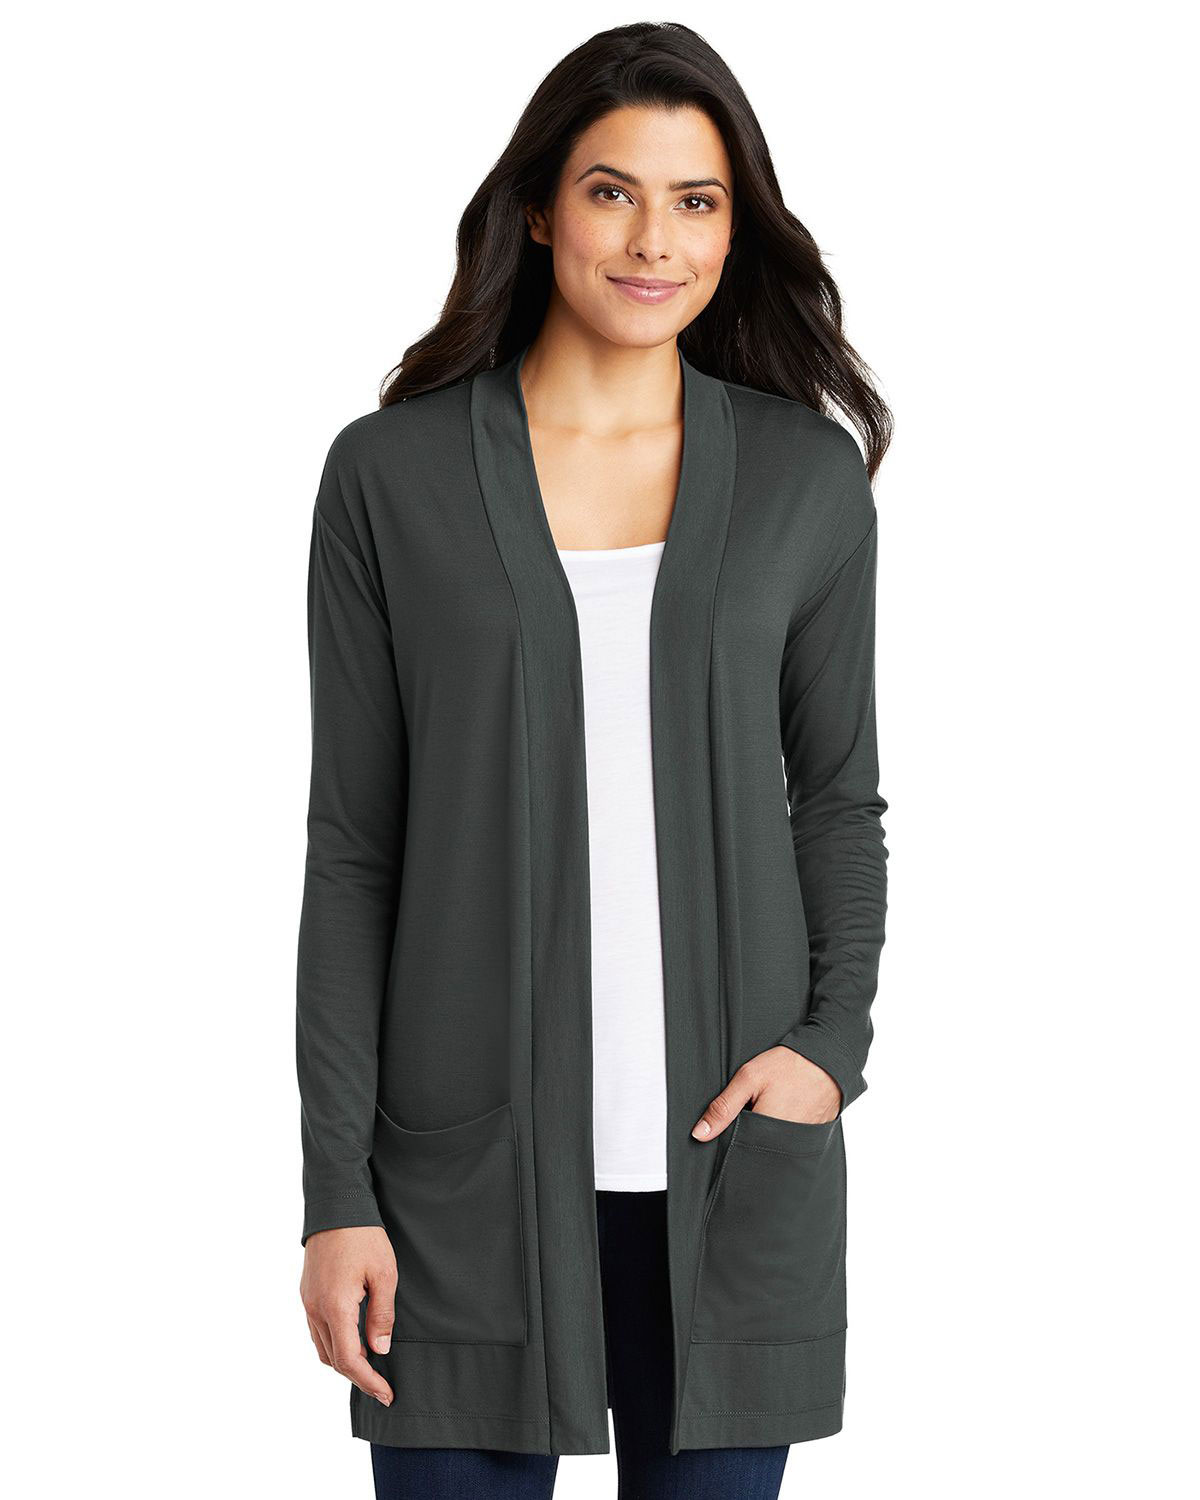 Port Authority LK5434 Women Concept Long Pocket Cardigan